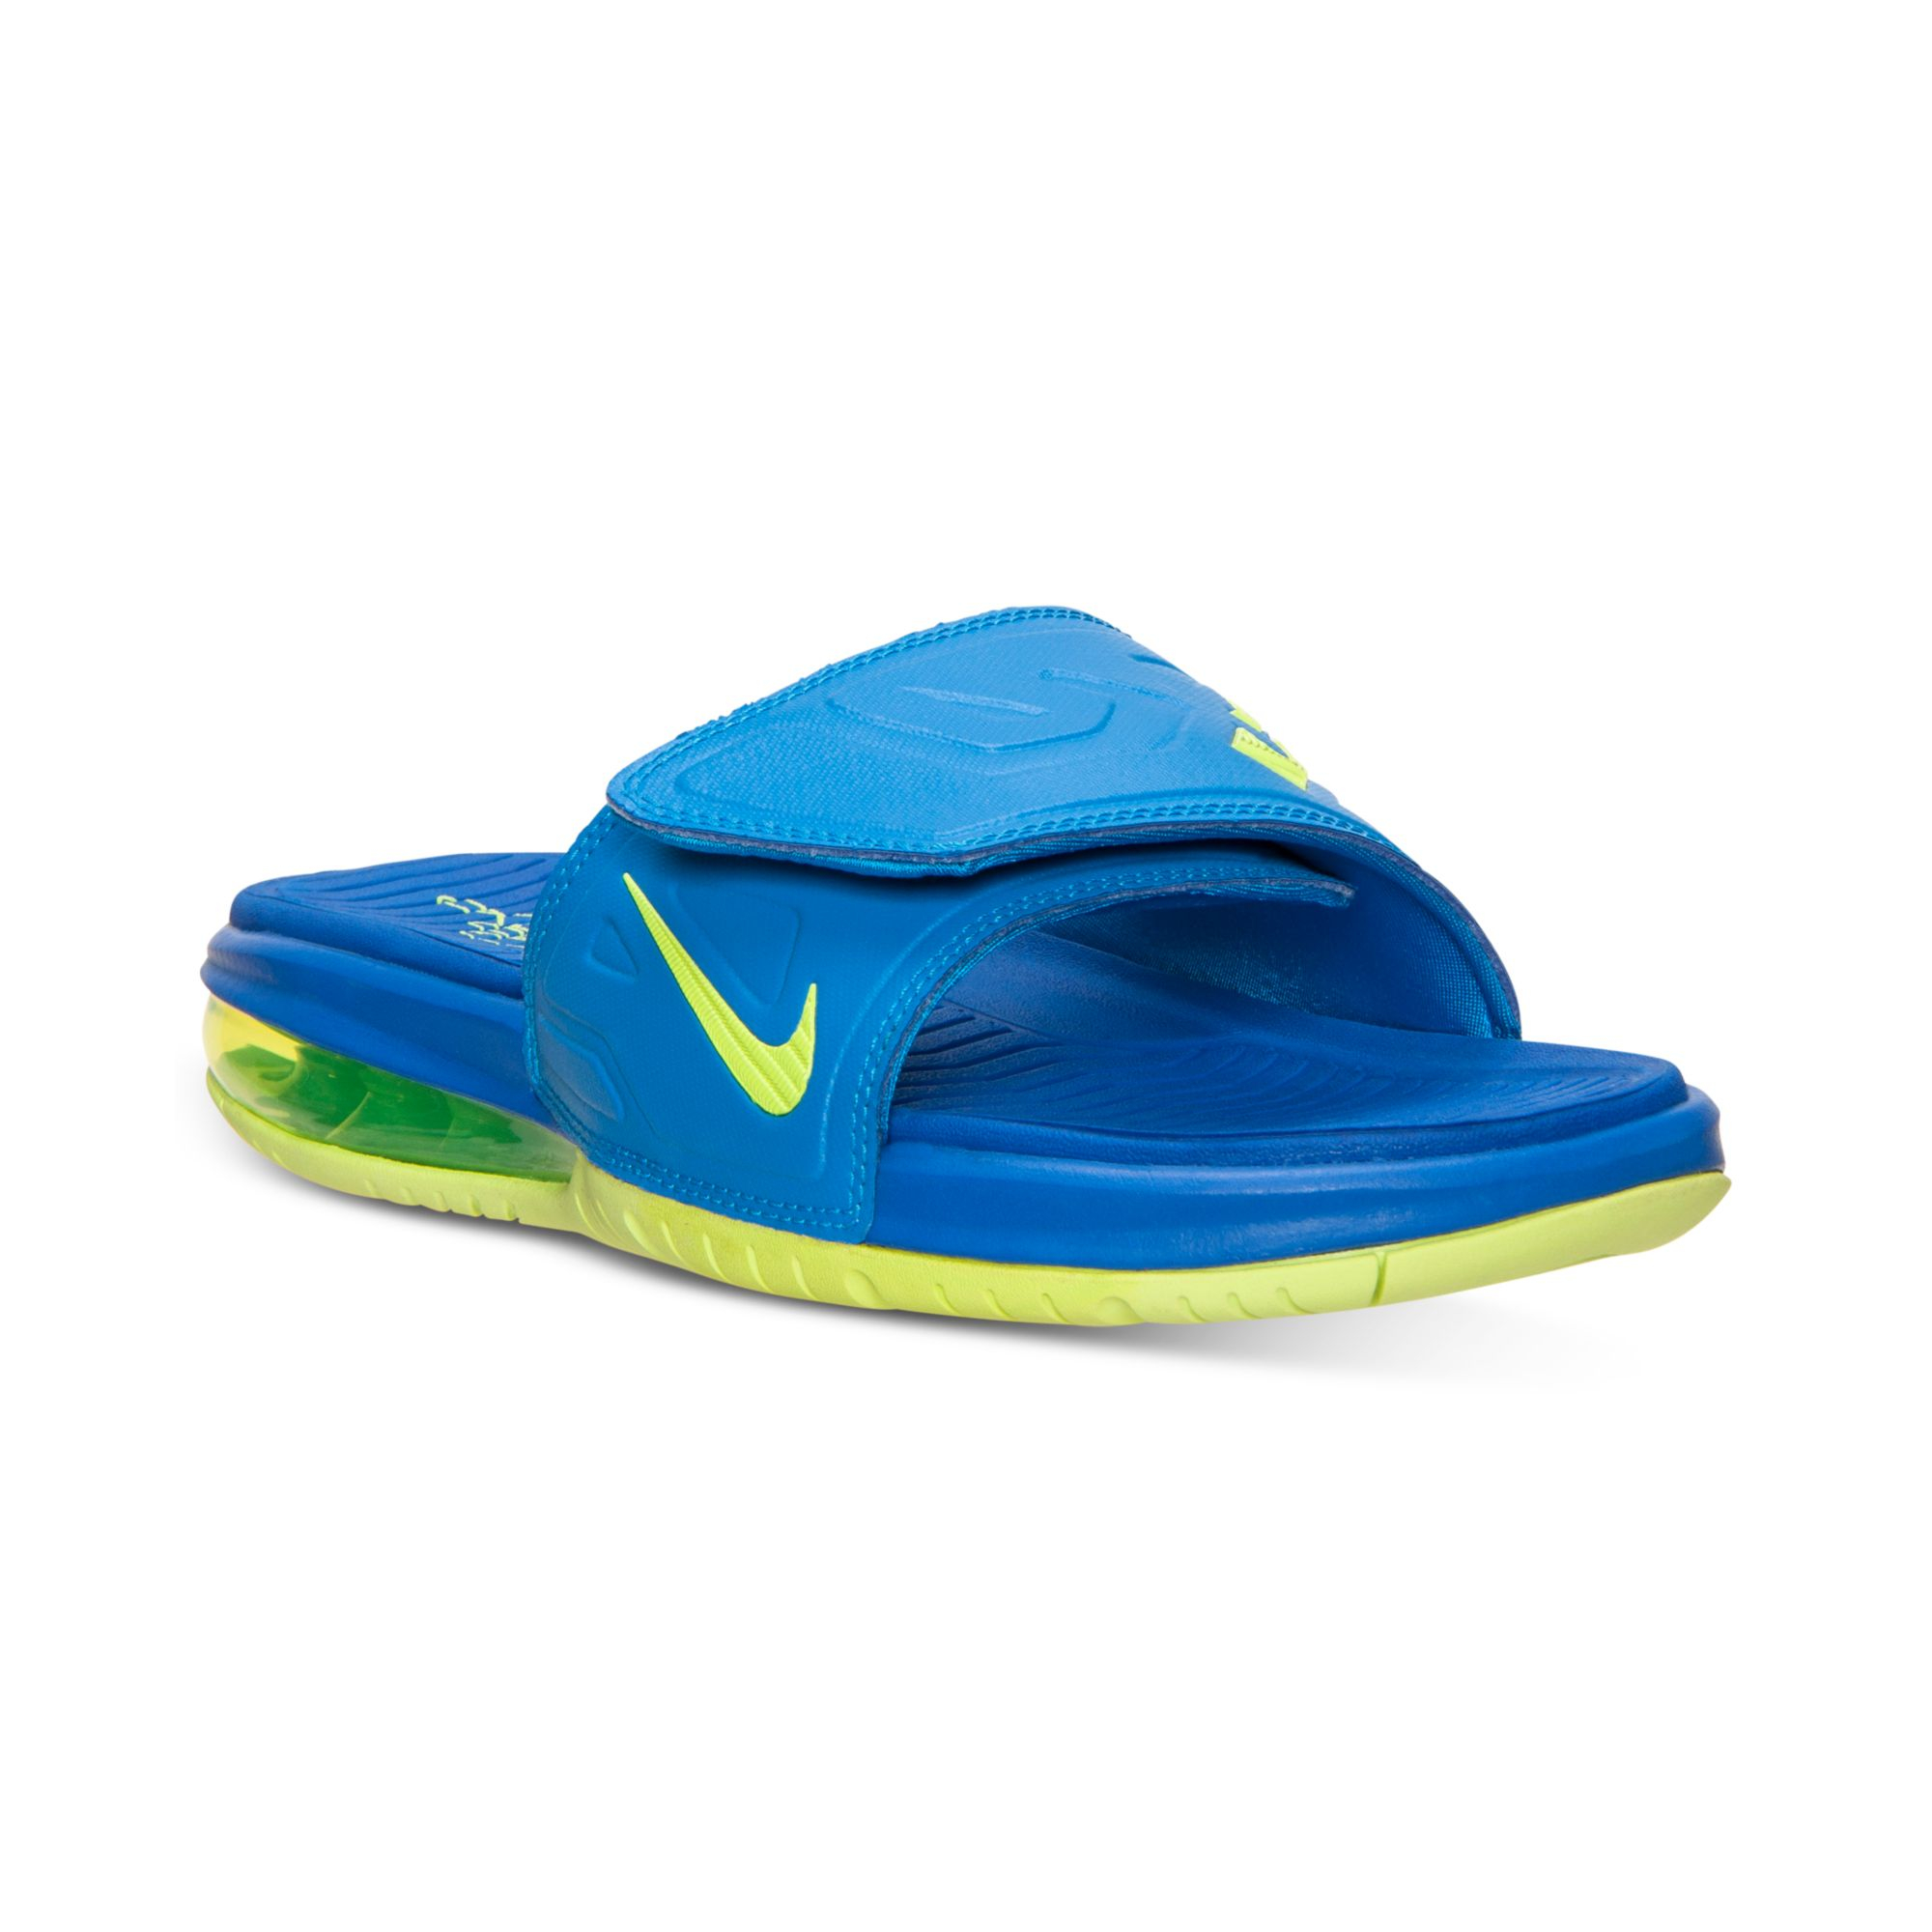 77ce7c0a993 Lyst - Nike Mens Air Lebron 3 Elite Slide Sandals From Finish Line ...